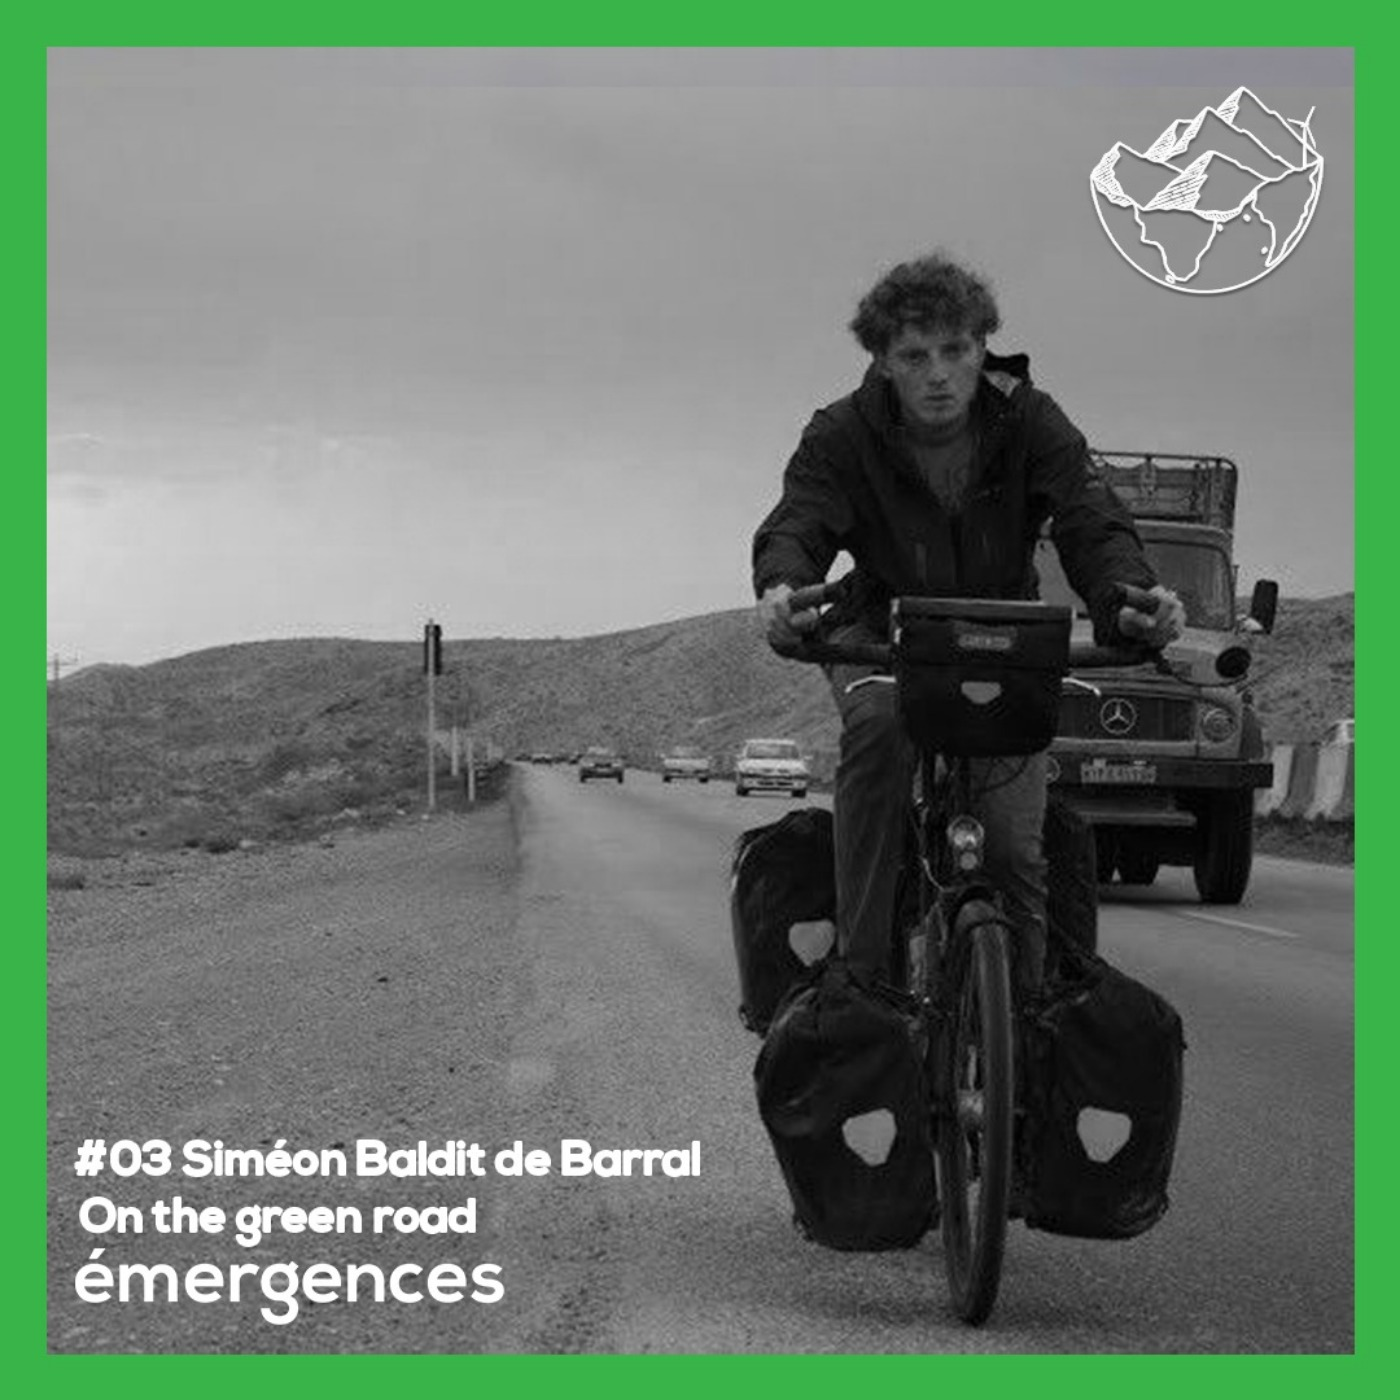 Emergences#03 - Siméon Baldit de Barral - On the Green Road